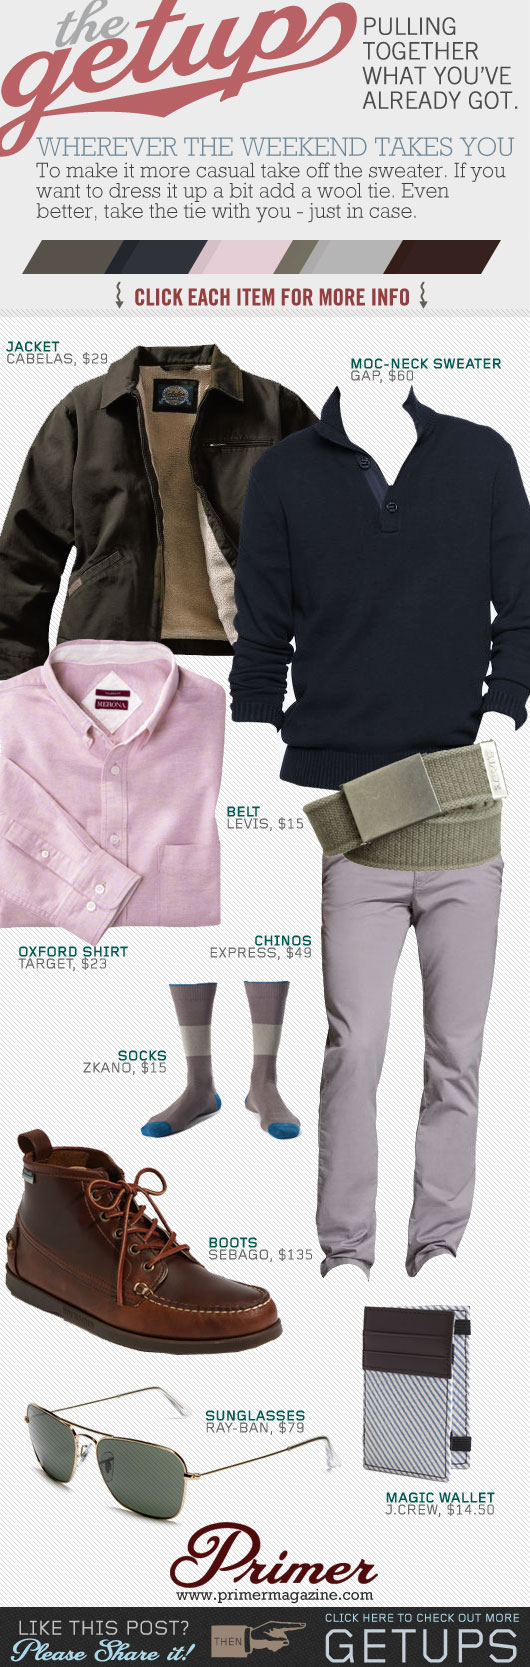 Getup - Wherever the weekend takes you - green jacket, blue sweater, pink shirt, gray pants